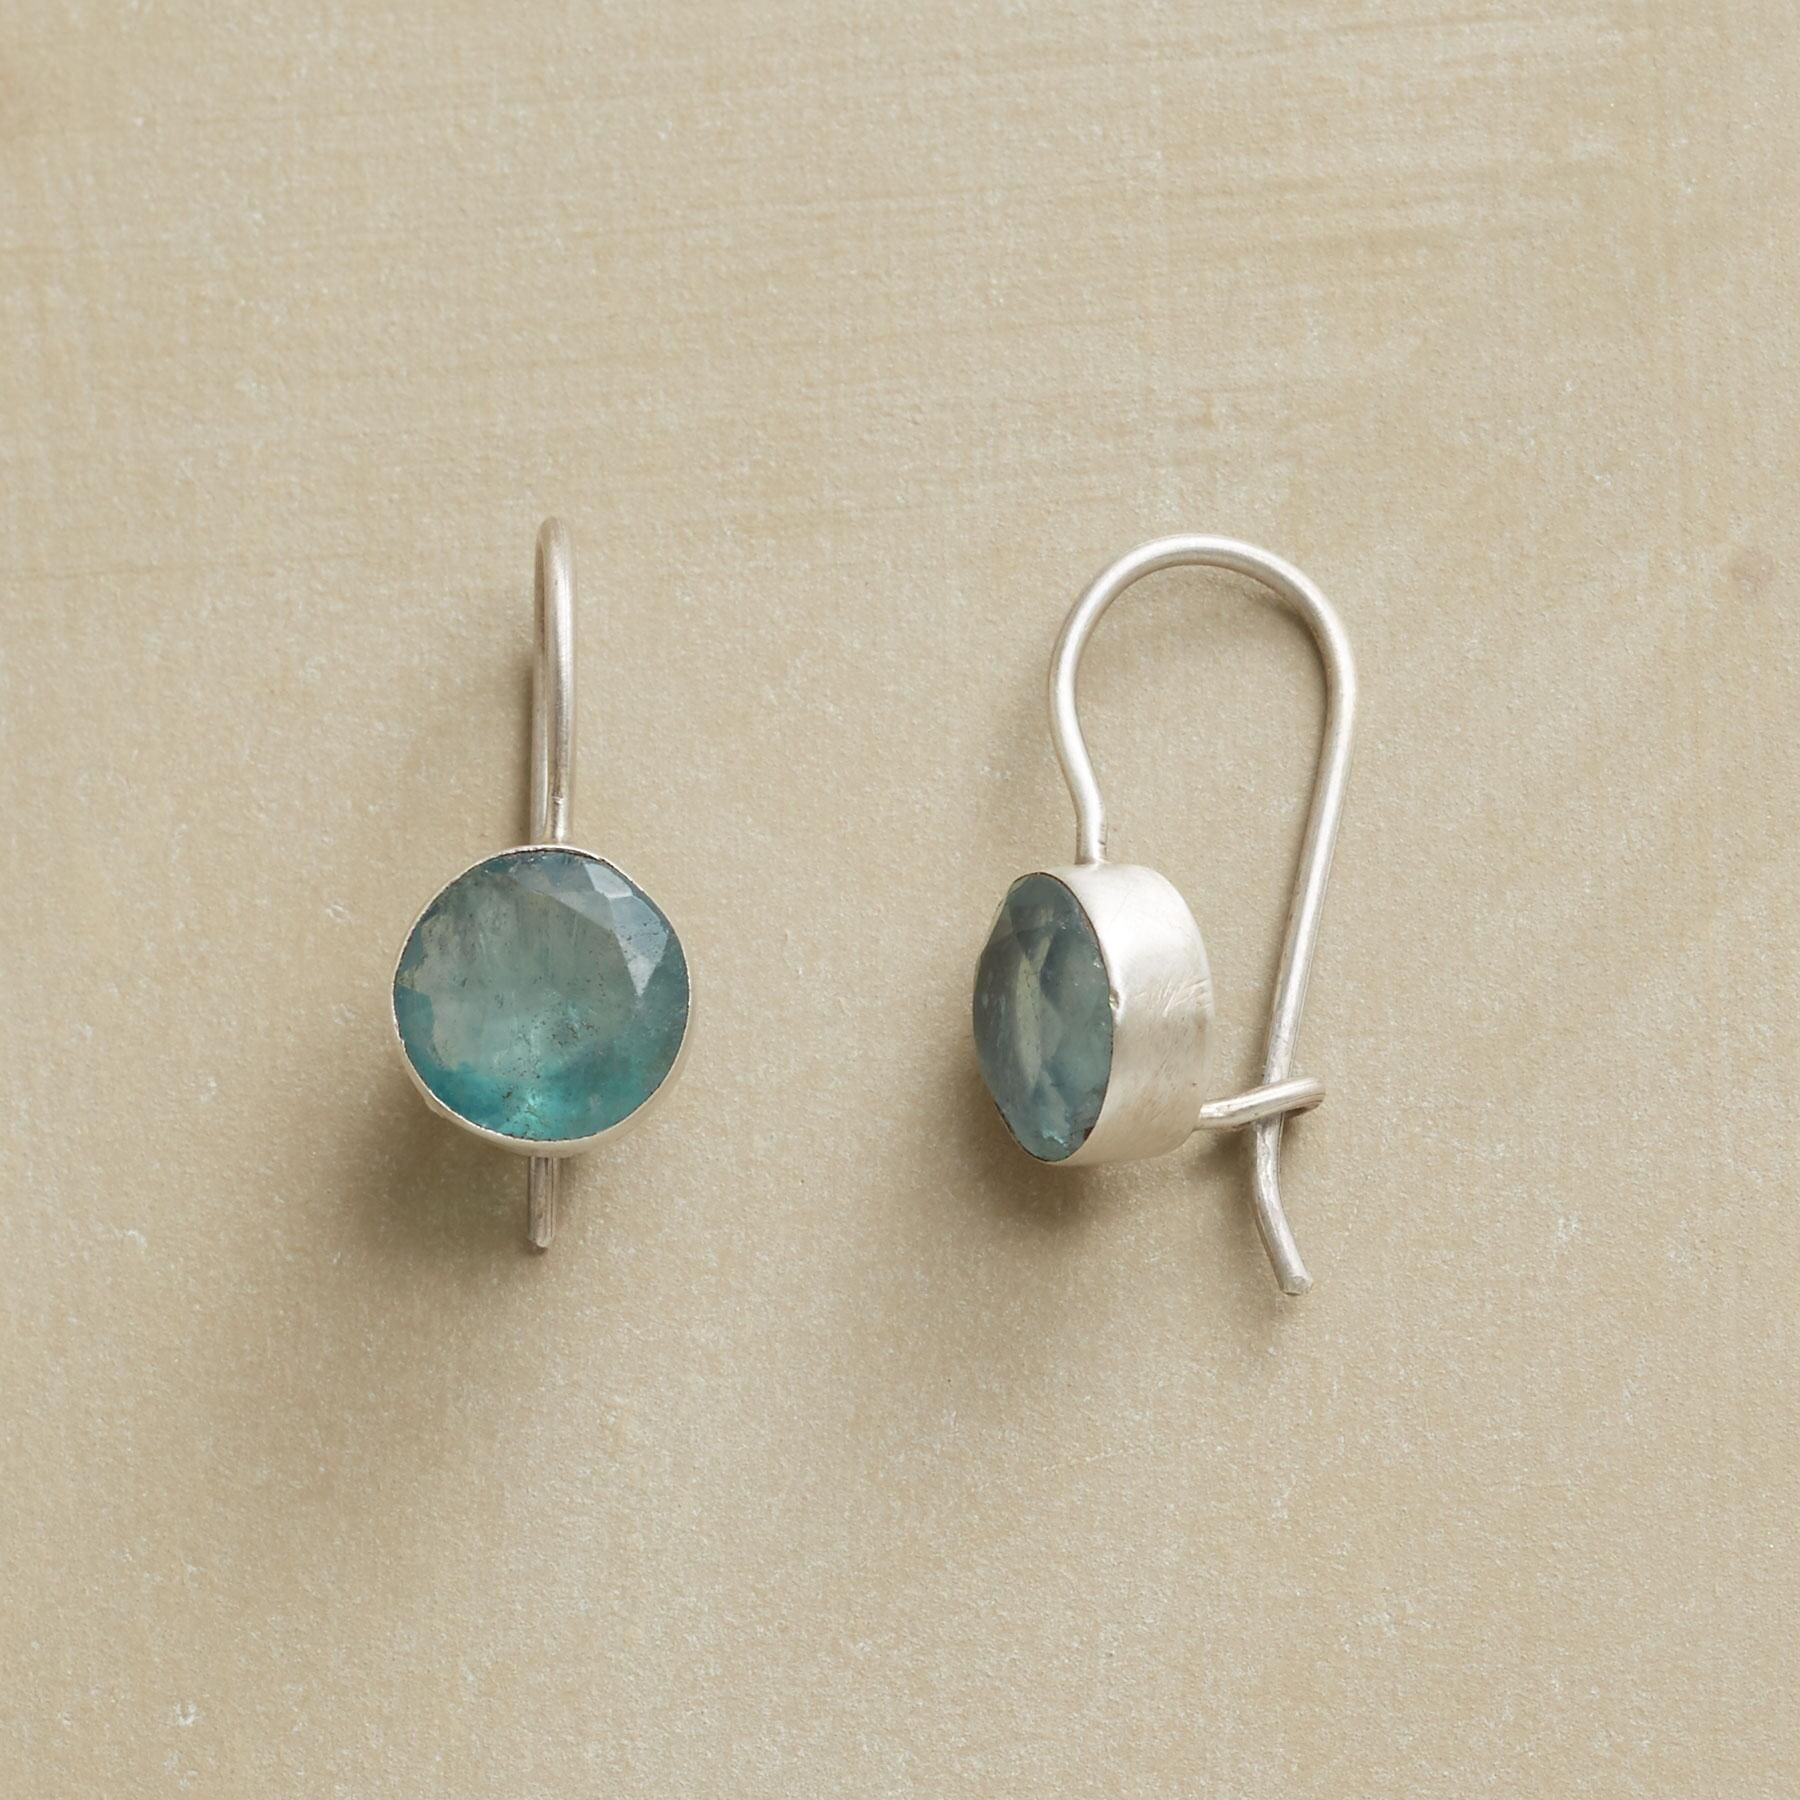 in il earrings healing listing dangle blue gallery fullxfull stone sterling for apatite photo silver